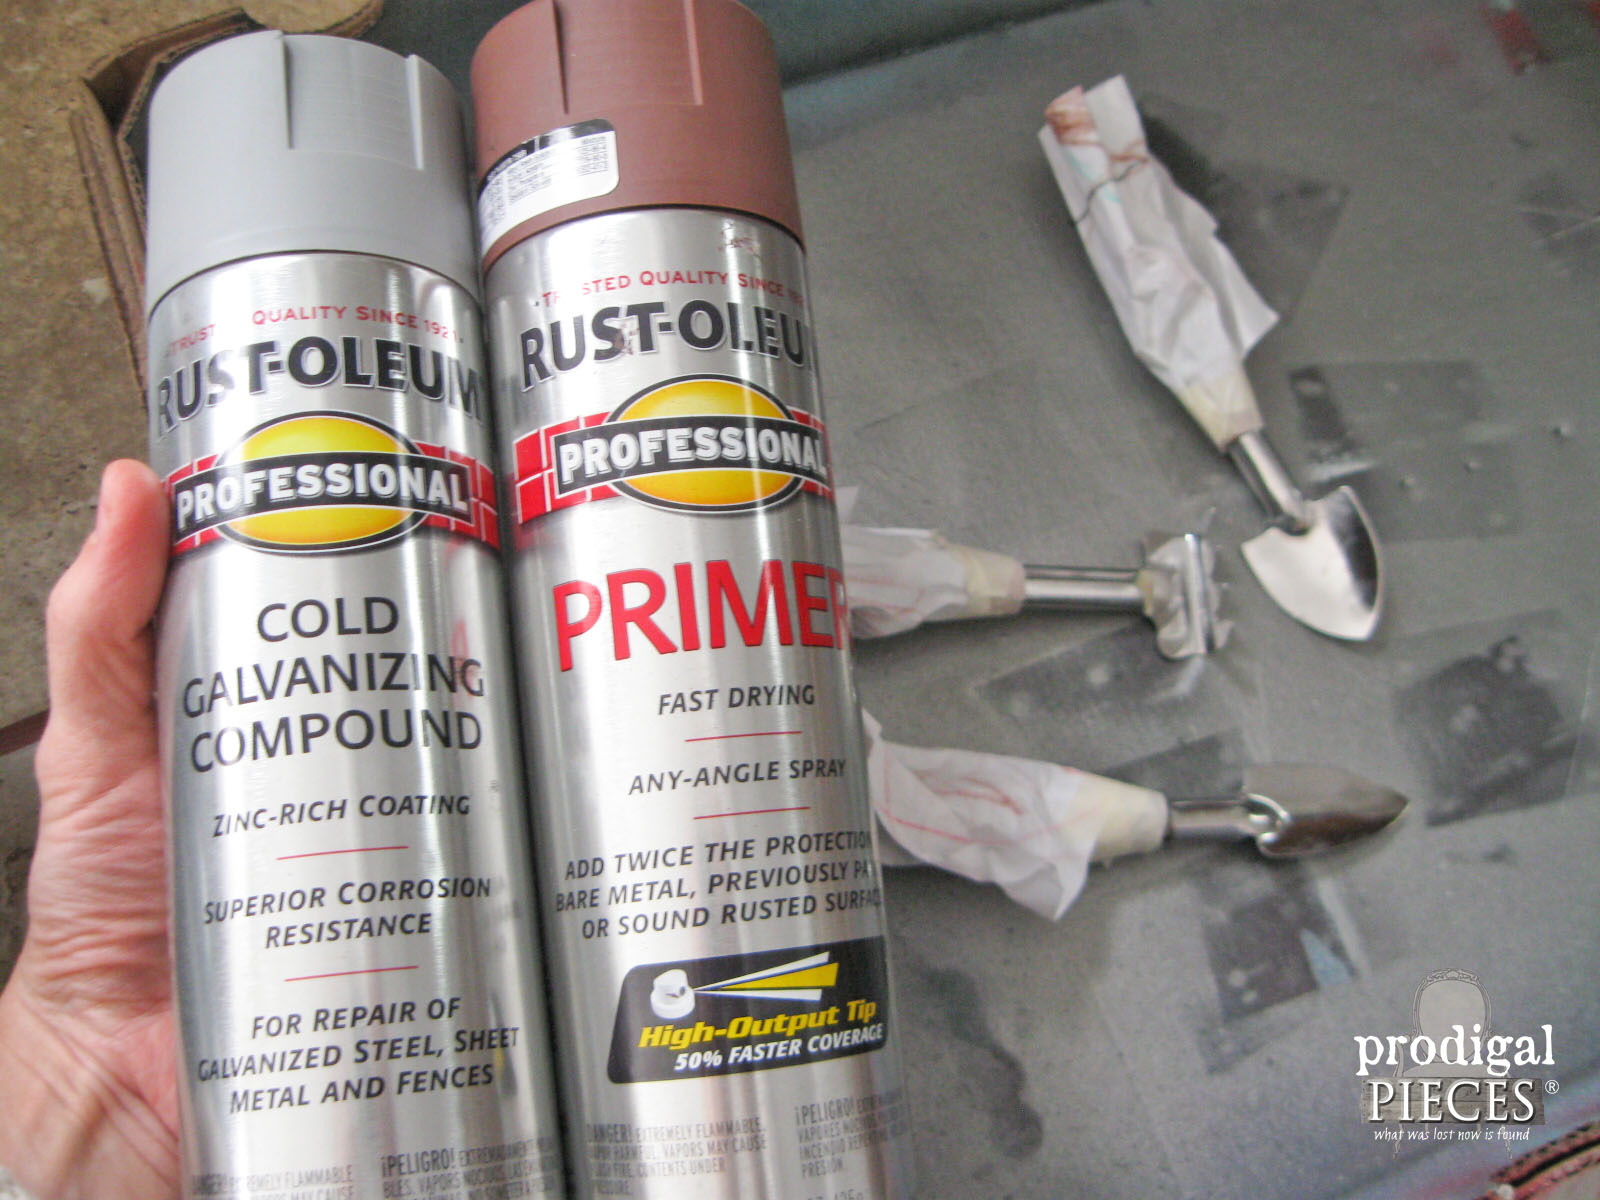 Rustoleum Professional Primer and Cold Galvanizing Compound | Prodigal Pieces | www.prodigalpieces.com